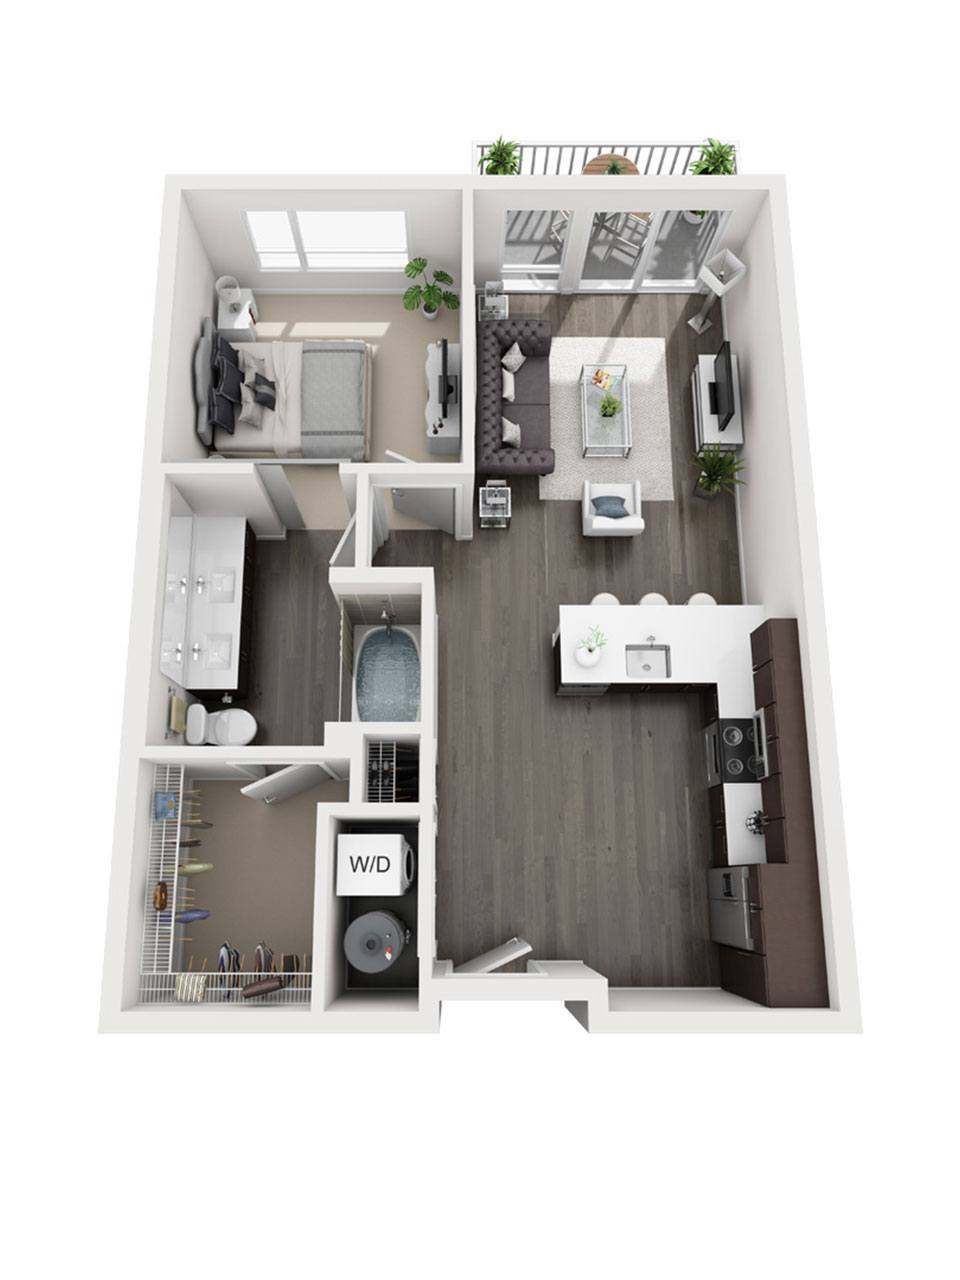 Plan 1 bedroom – A1-P | 1 Bath